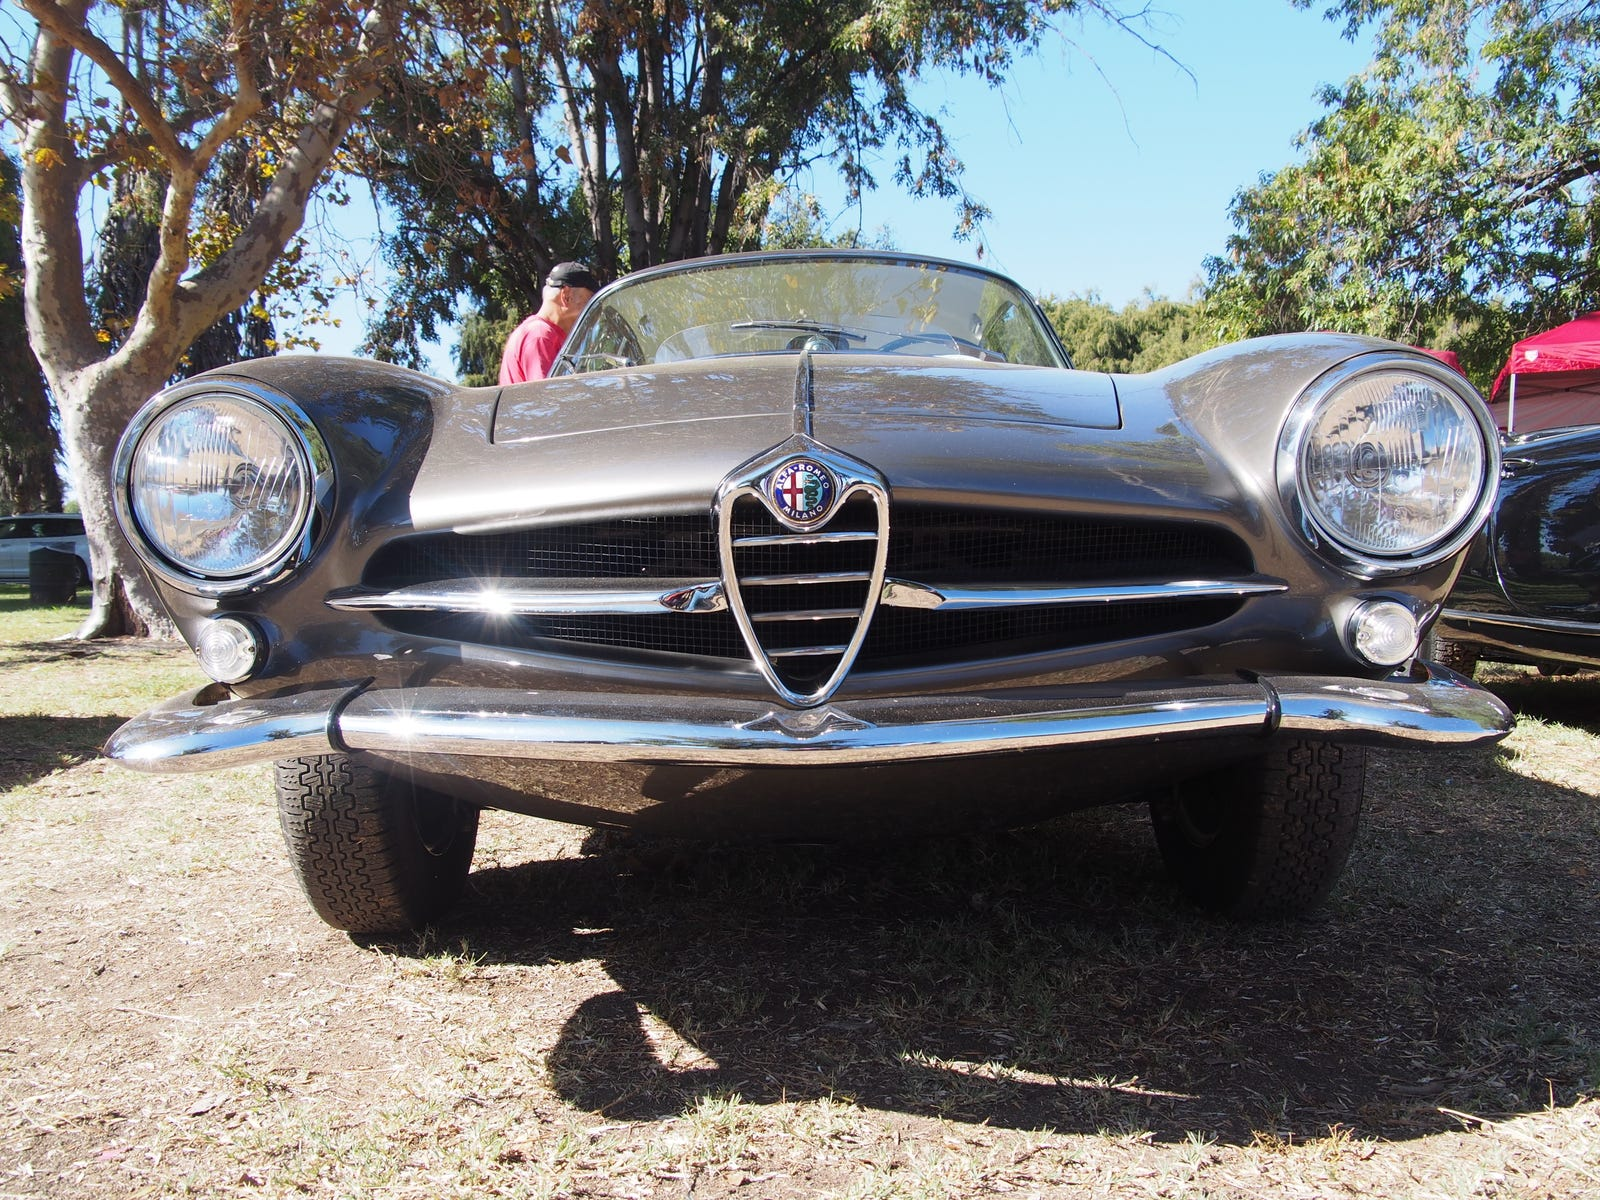 And the Giulia SS is the sexist Alfa.